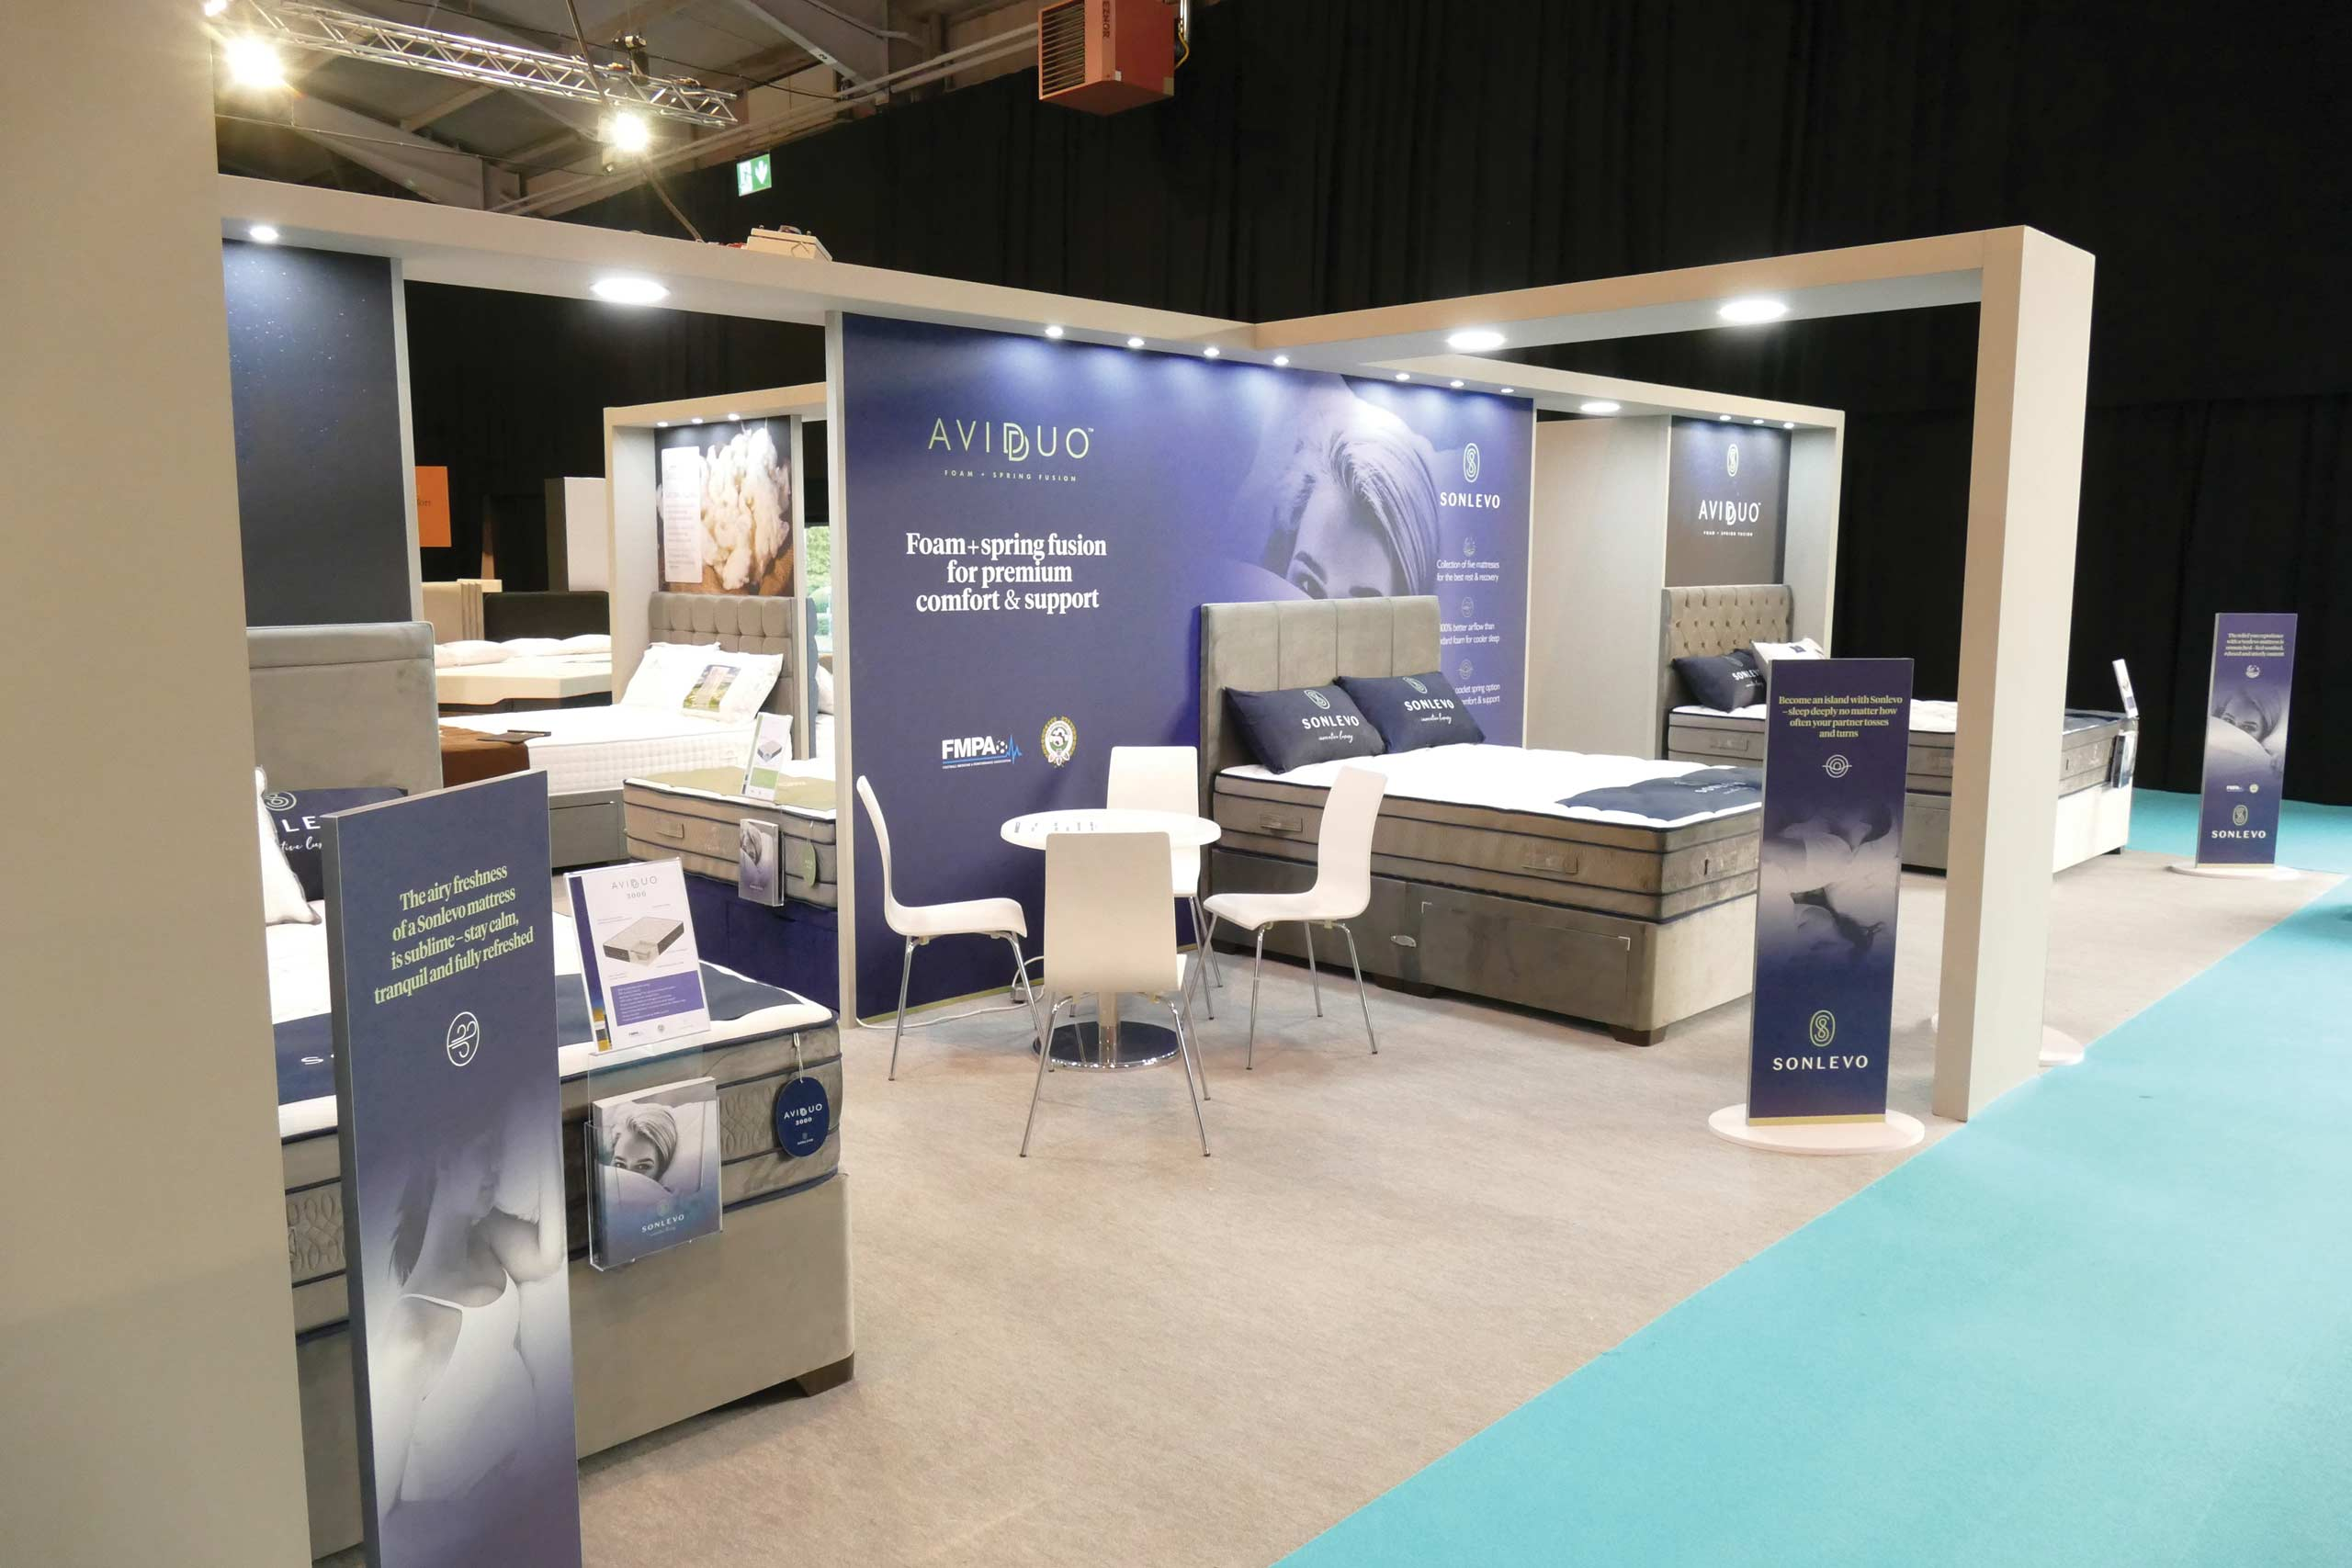 Trade Exhibition Show stand with Sonlevo work by Zeke Creative